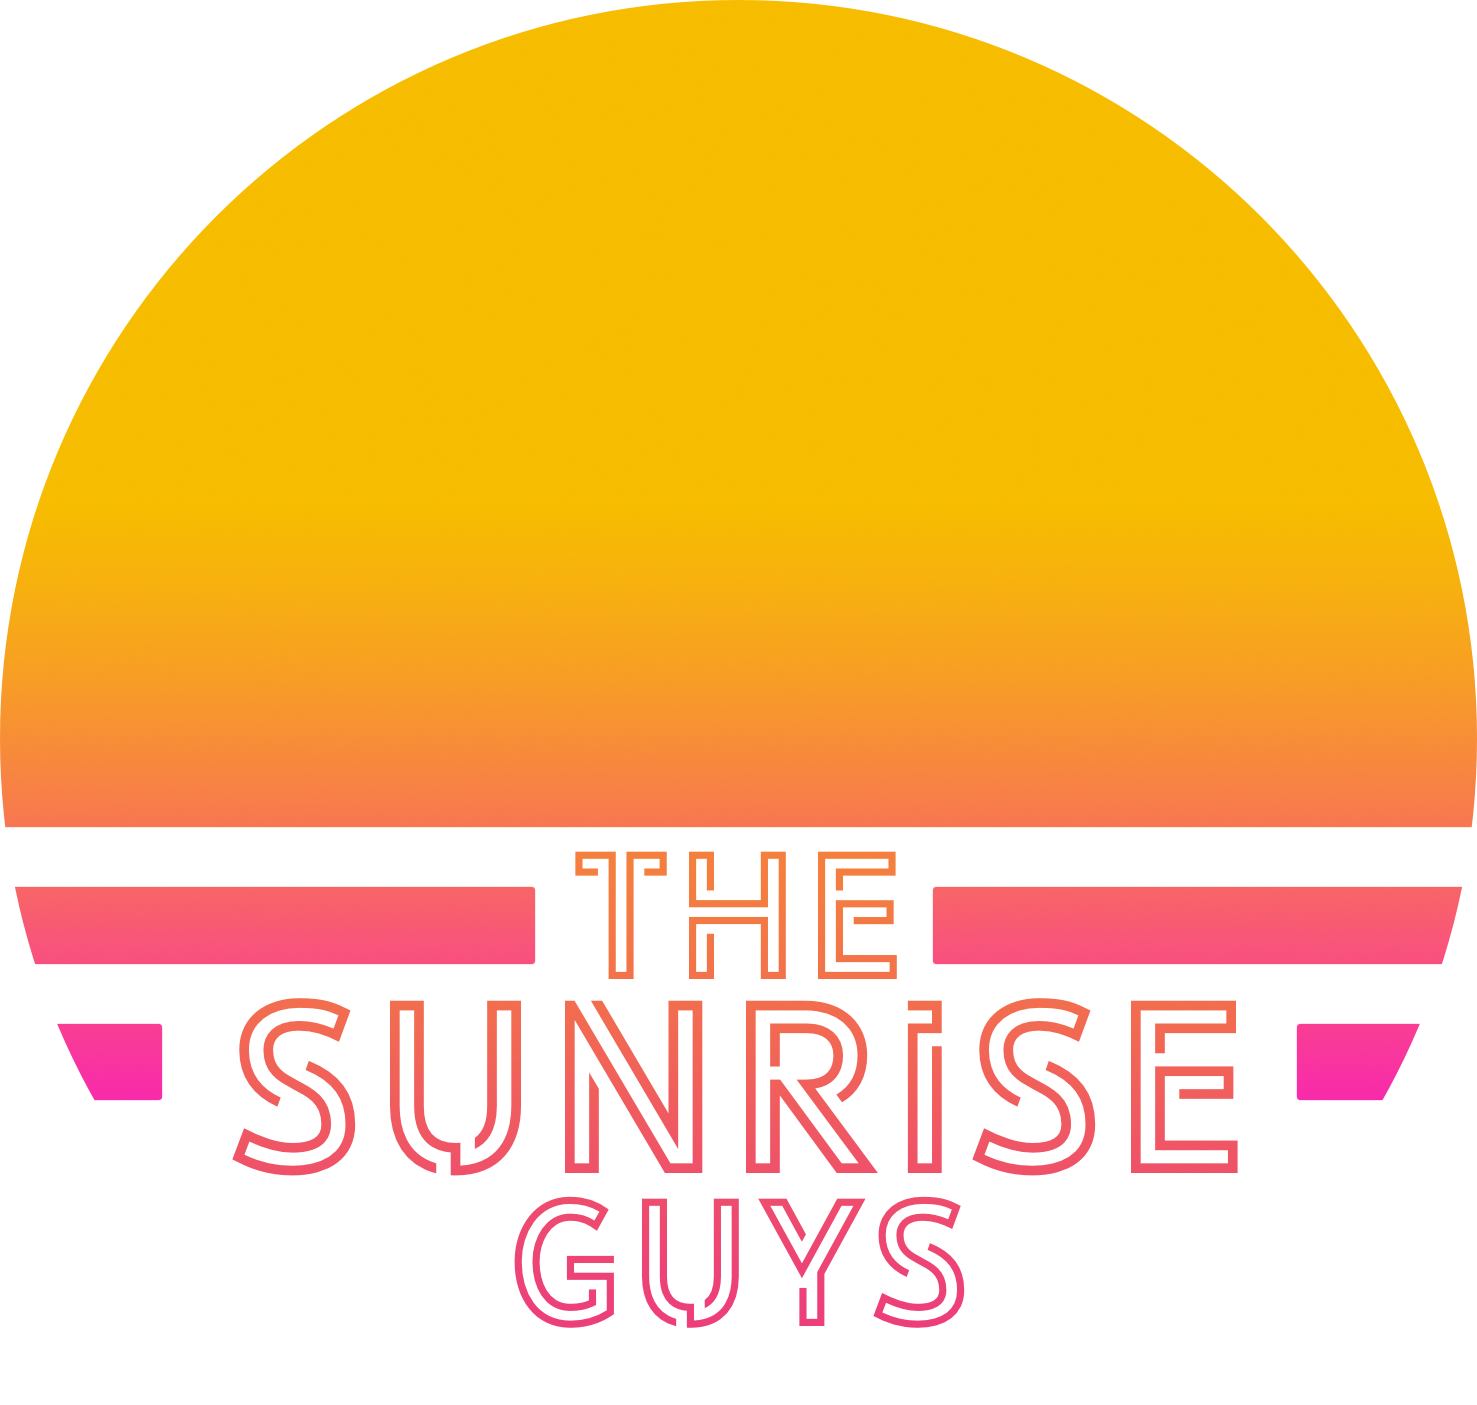 The Sunrise Guys